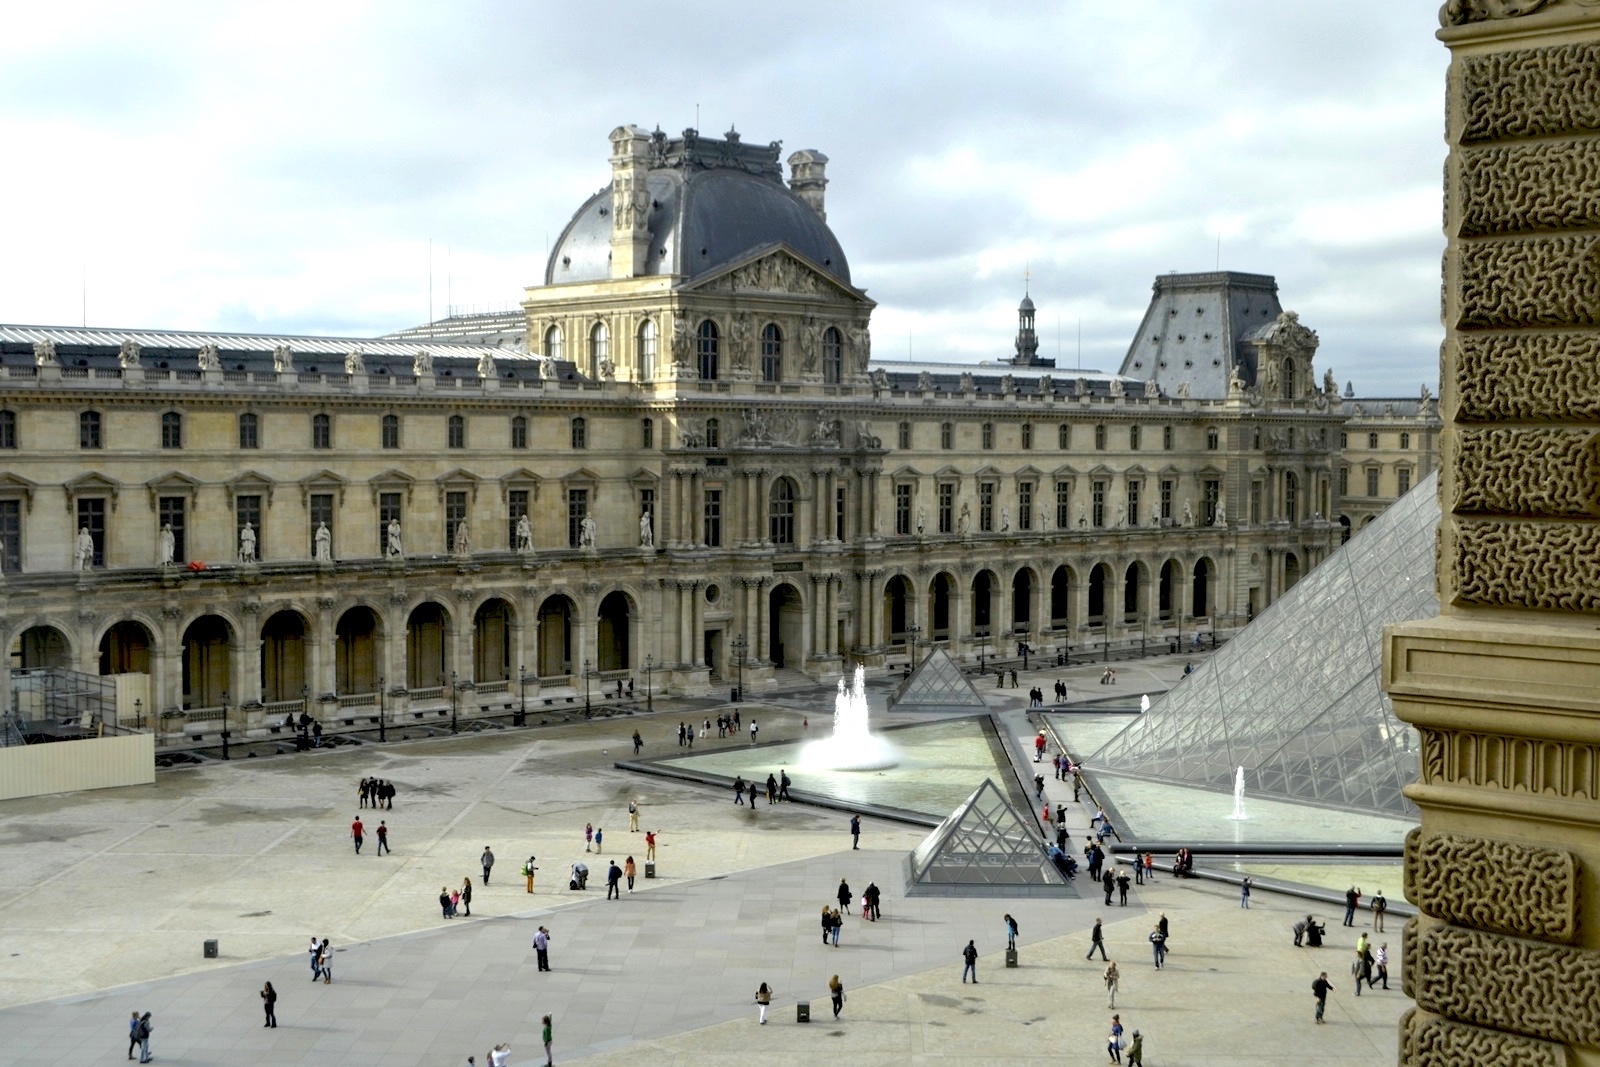 Paris' best monuments, museums, and cafés through the eyes of a travel writer